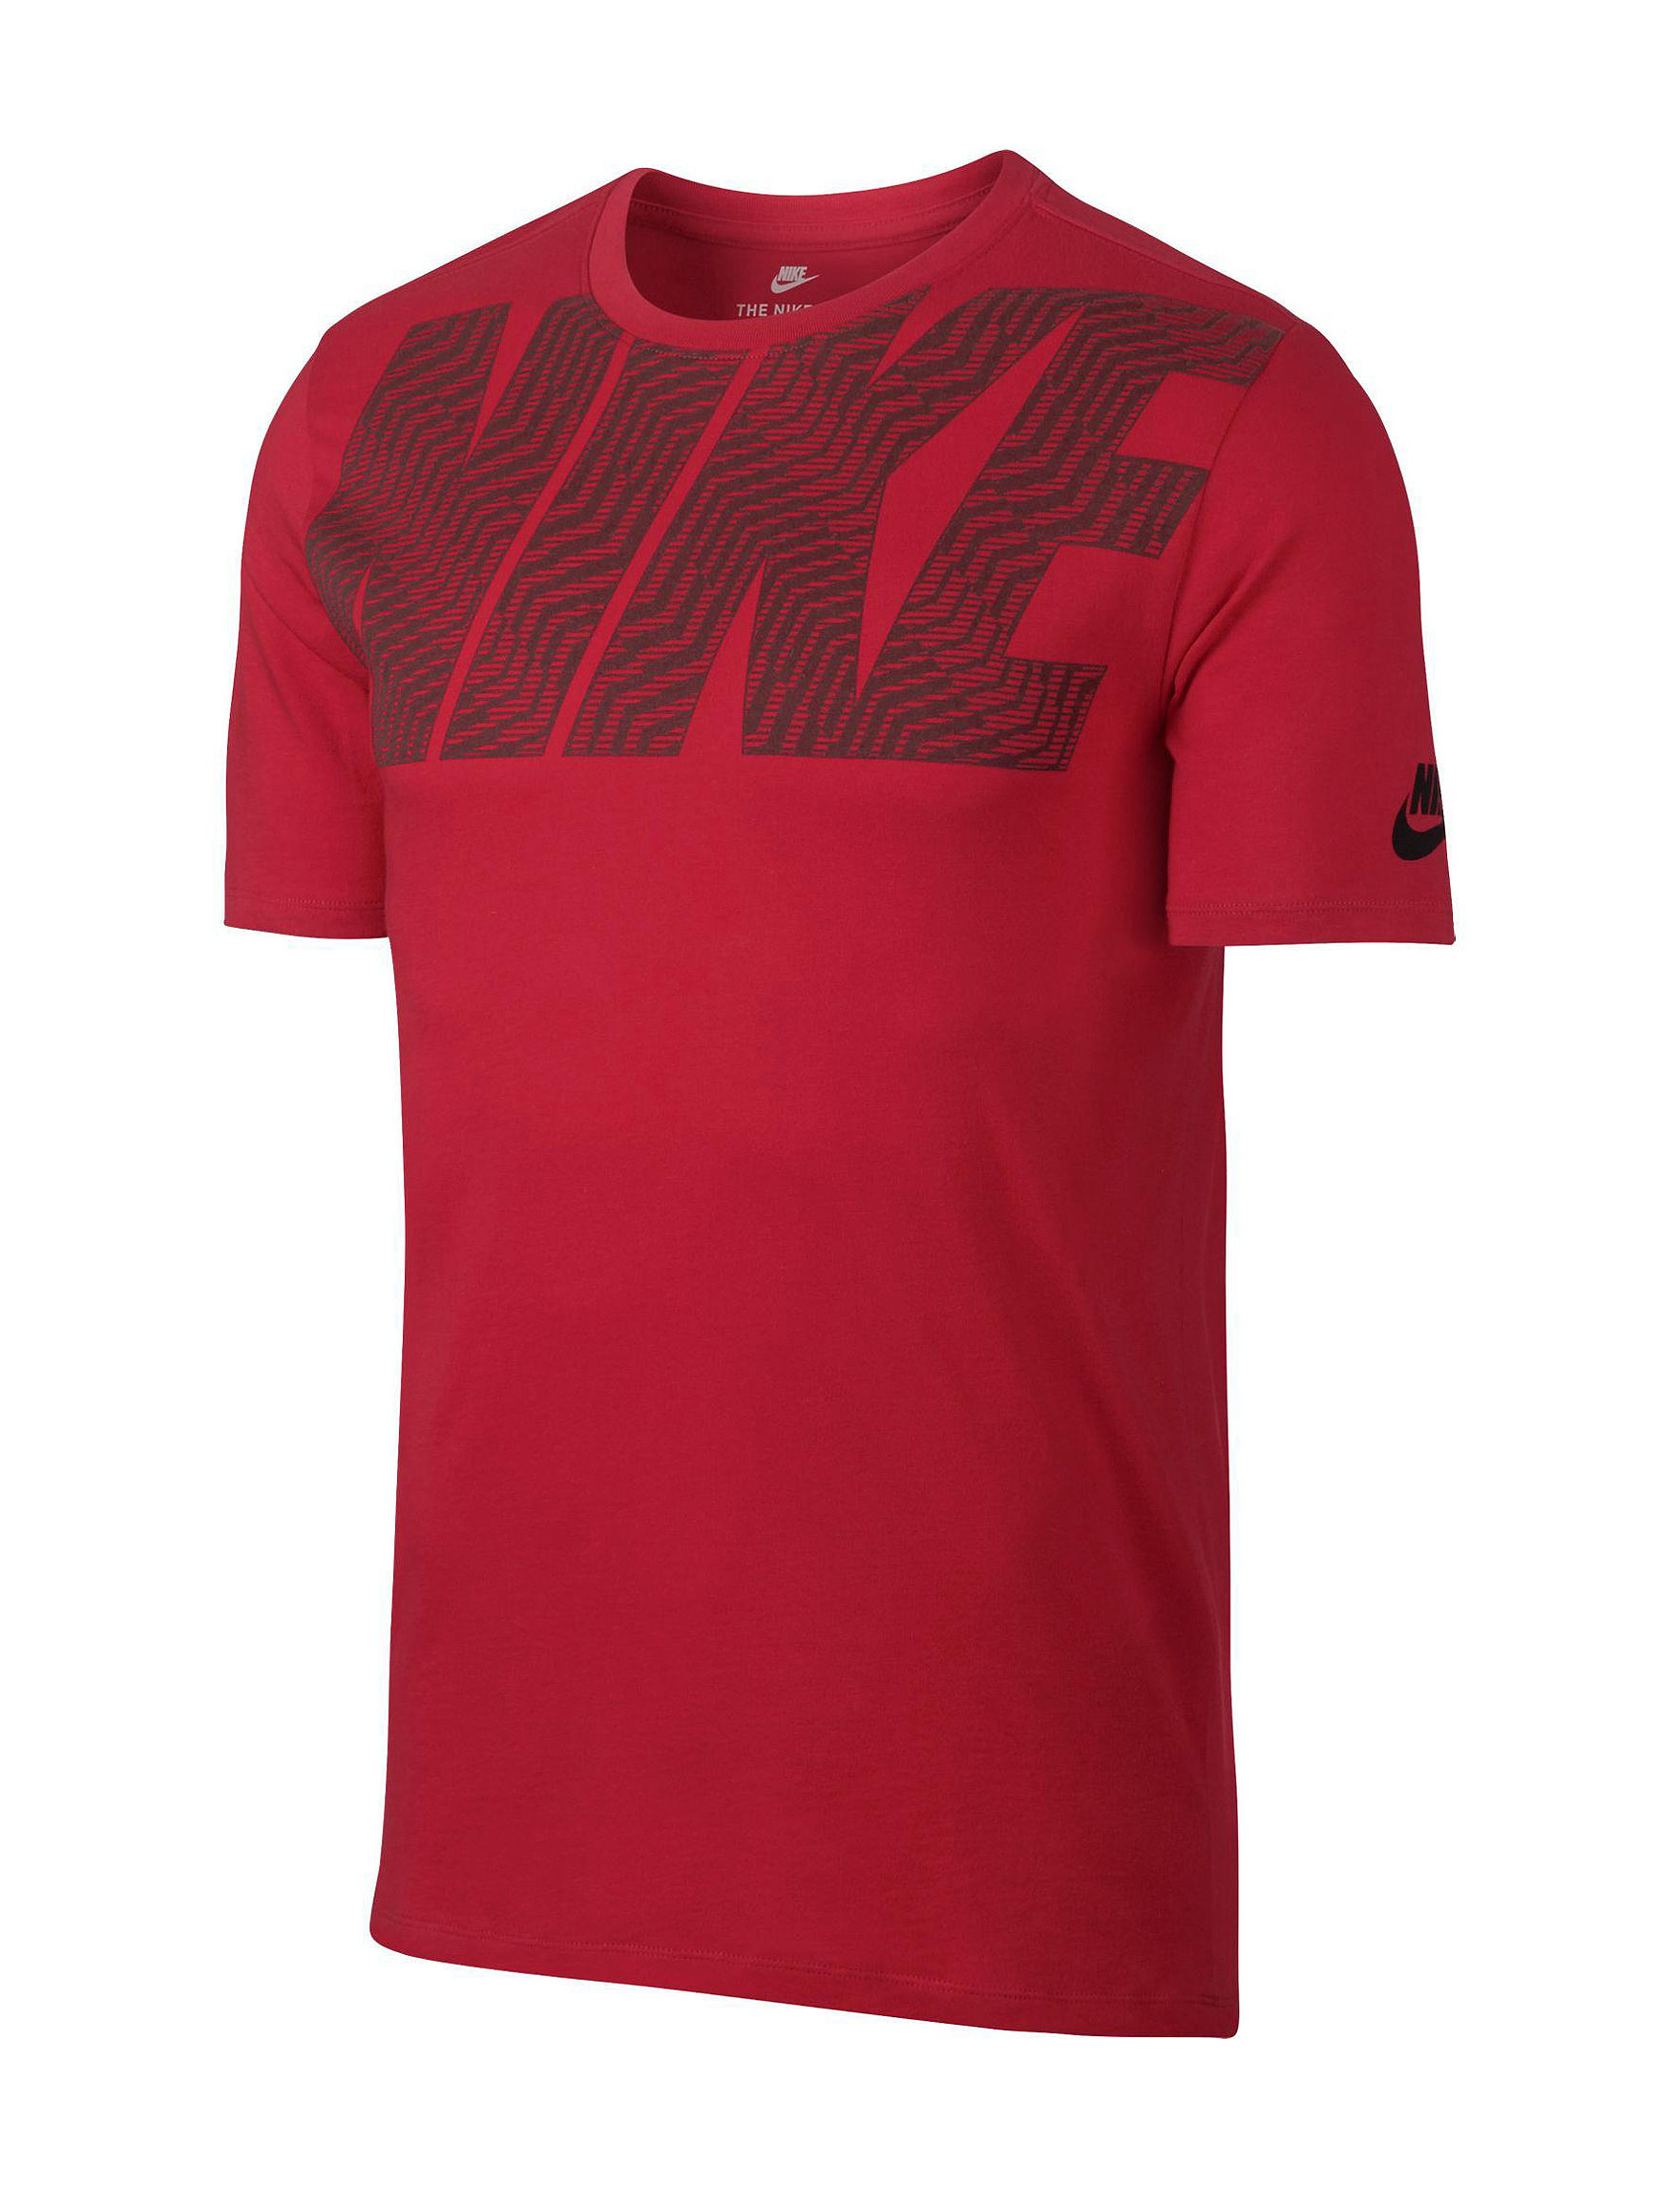 Nike Red / Black Tees & Tanks